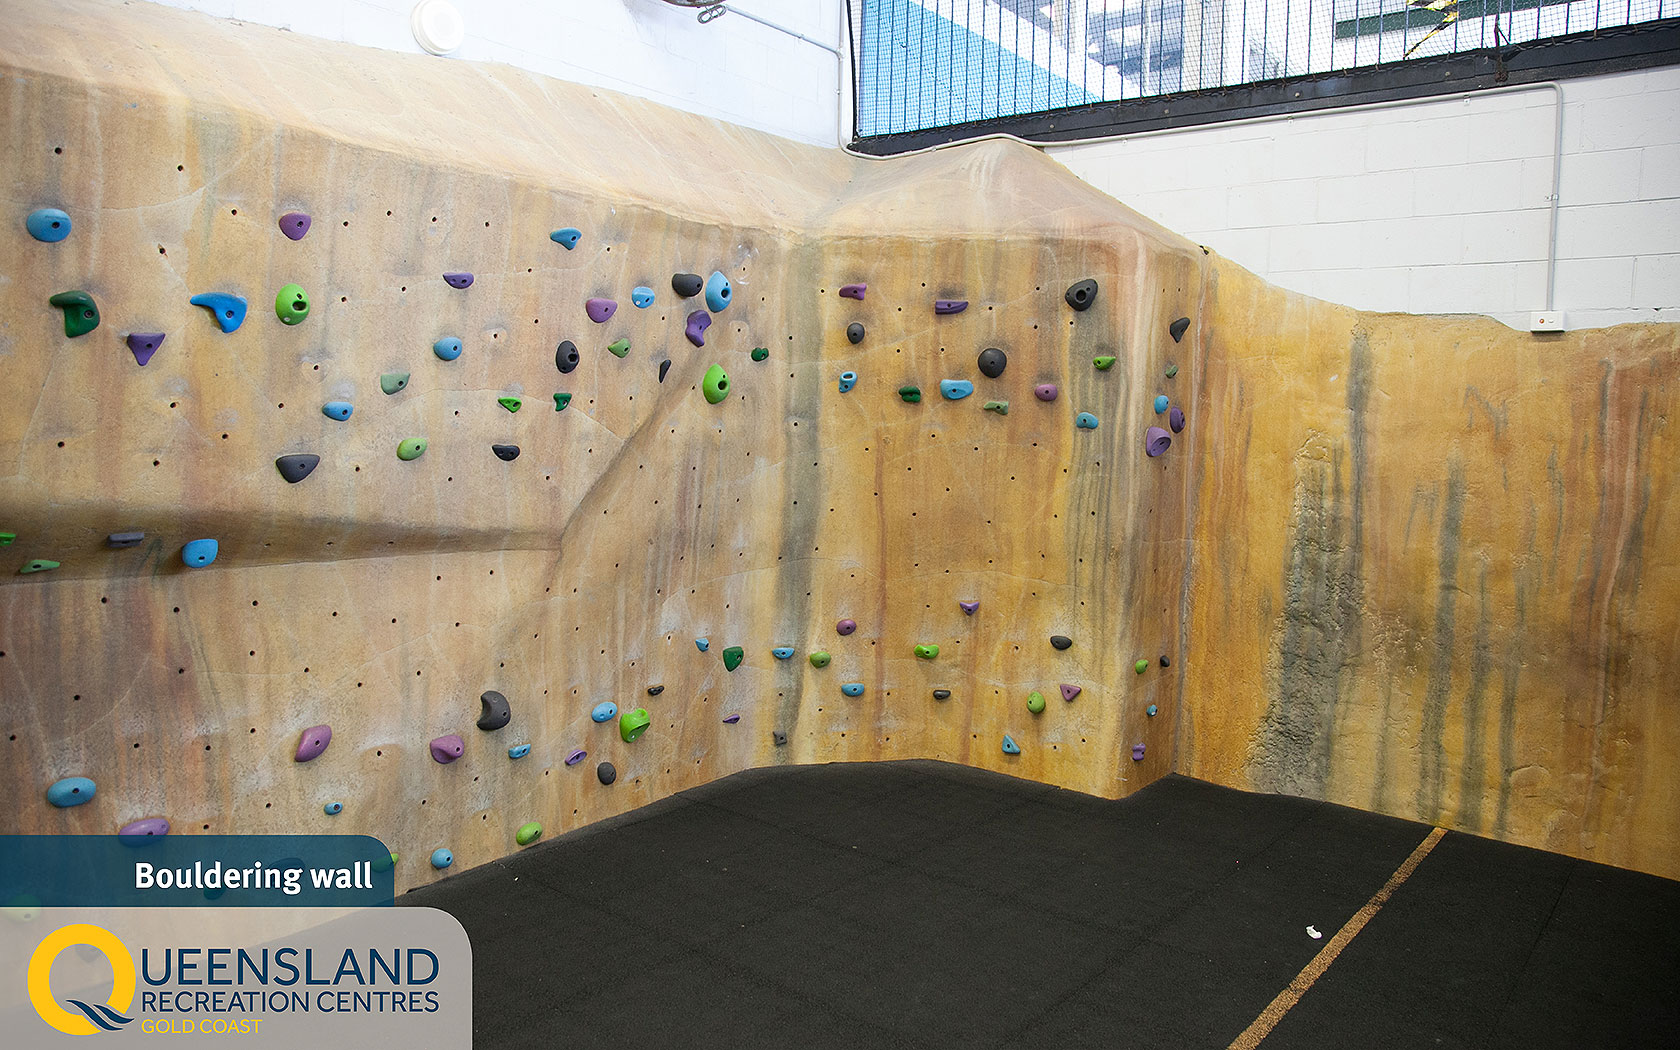 Single-storey bouldering wall with colourful hand holds at the Gold Coast Recreation Centre